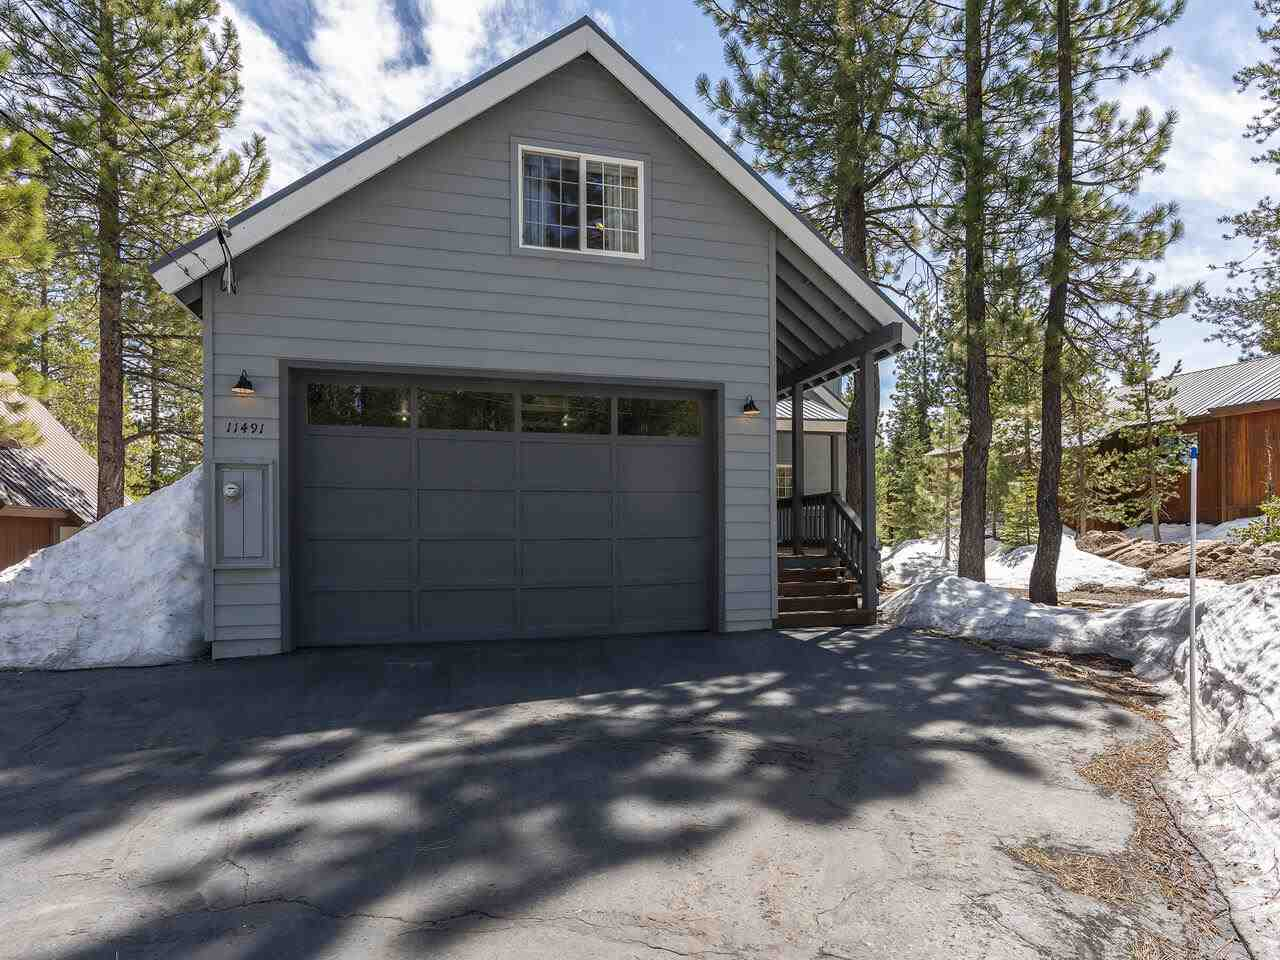 Image for 11491 Baden Road, Truckee, CA 96161